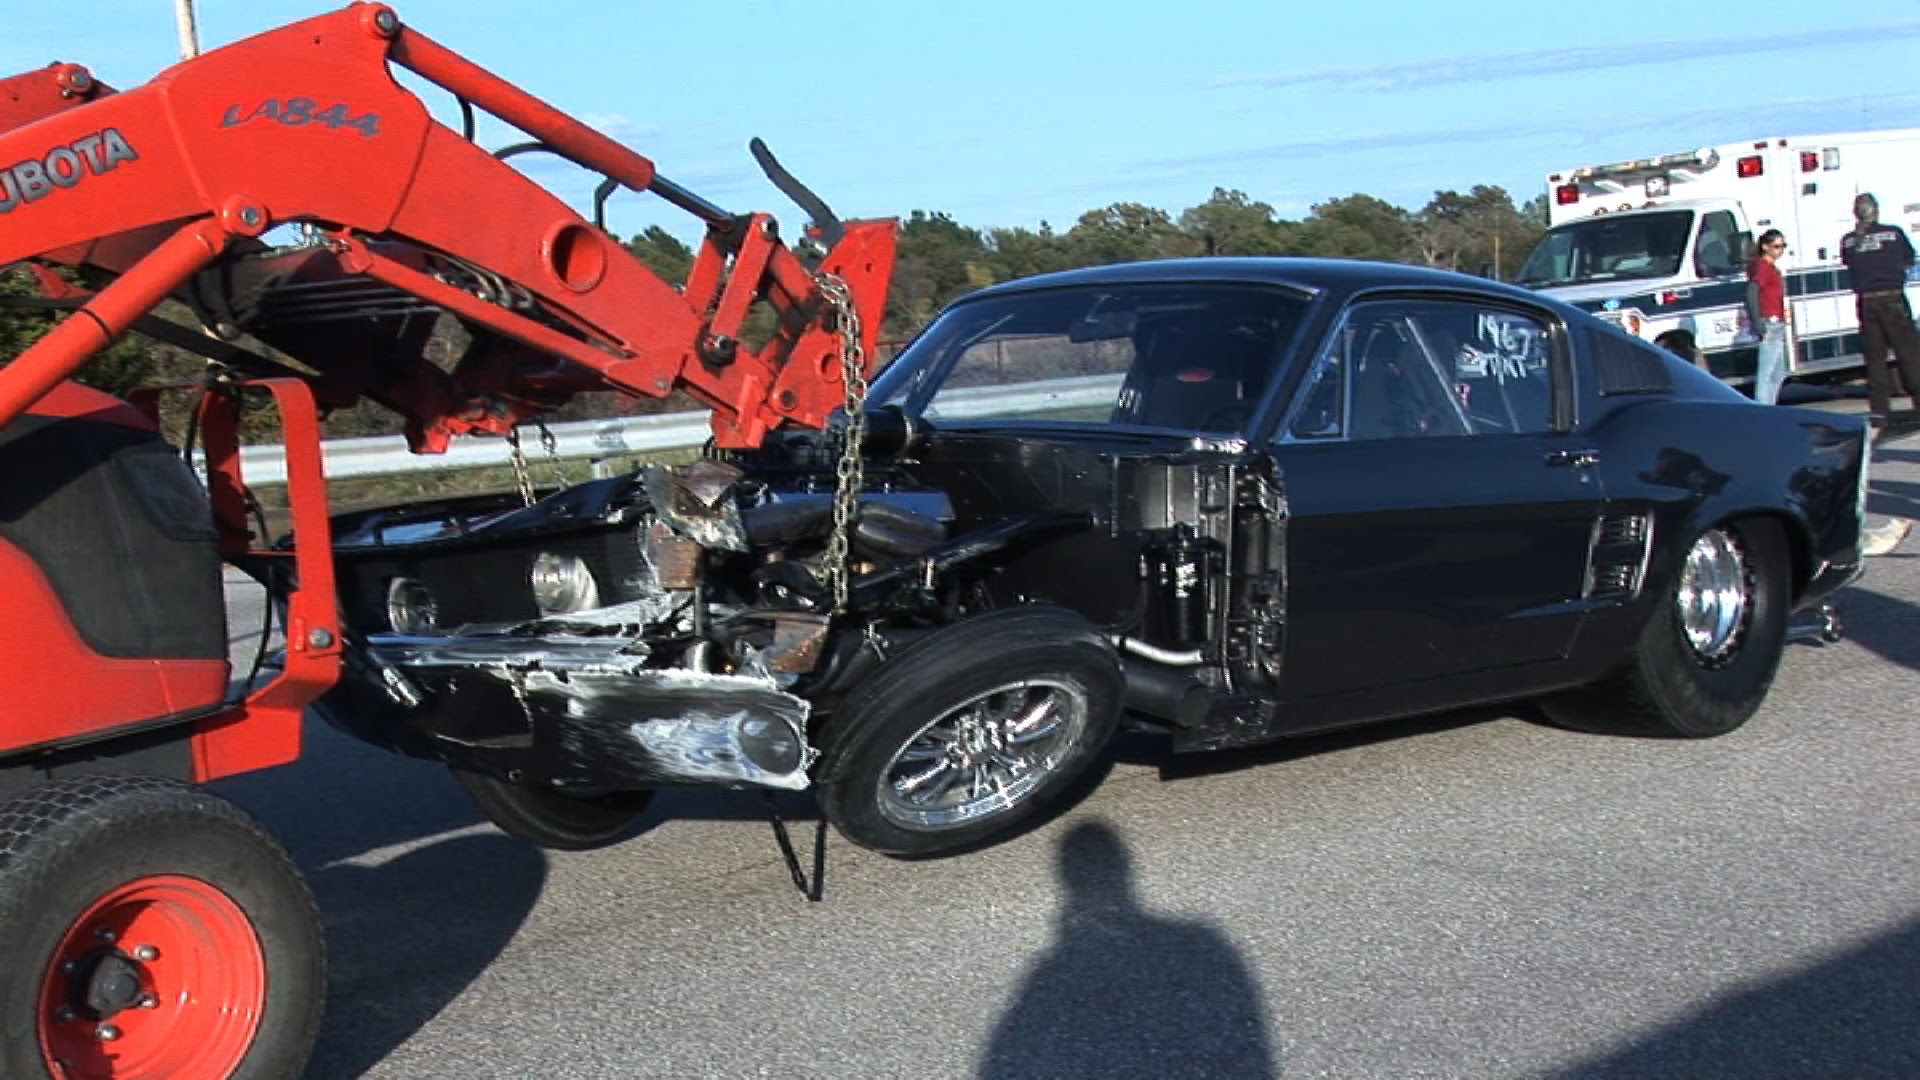 Pin Cutty Street Outlaws On Pinterest